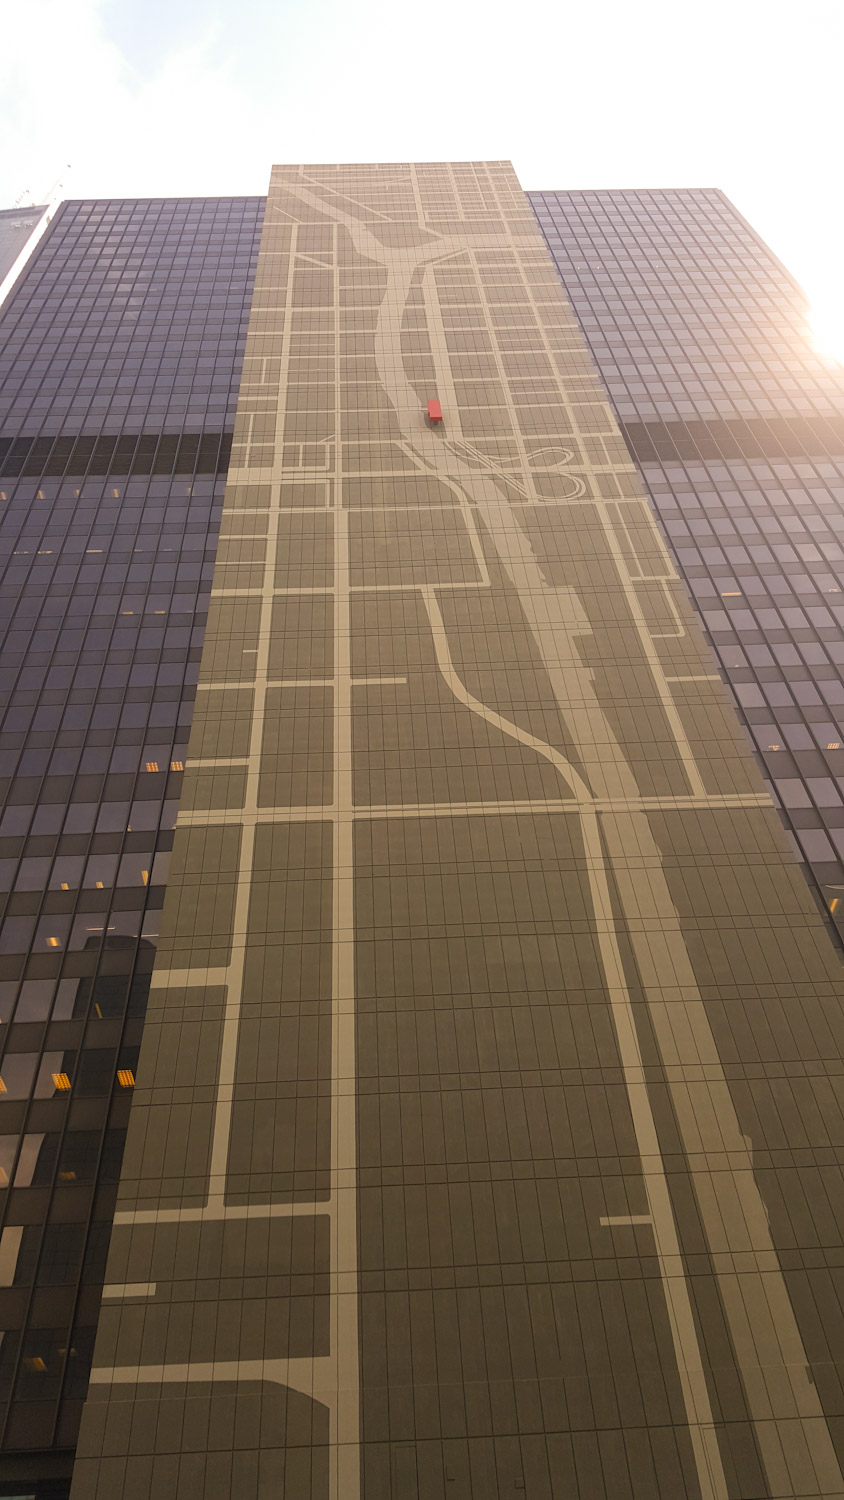 If you're ever lost, they were kind enough to build a concrete map of the Chicago River on this skyscraper